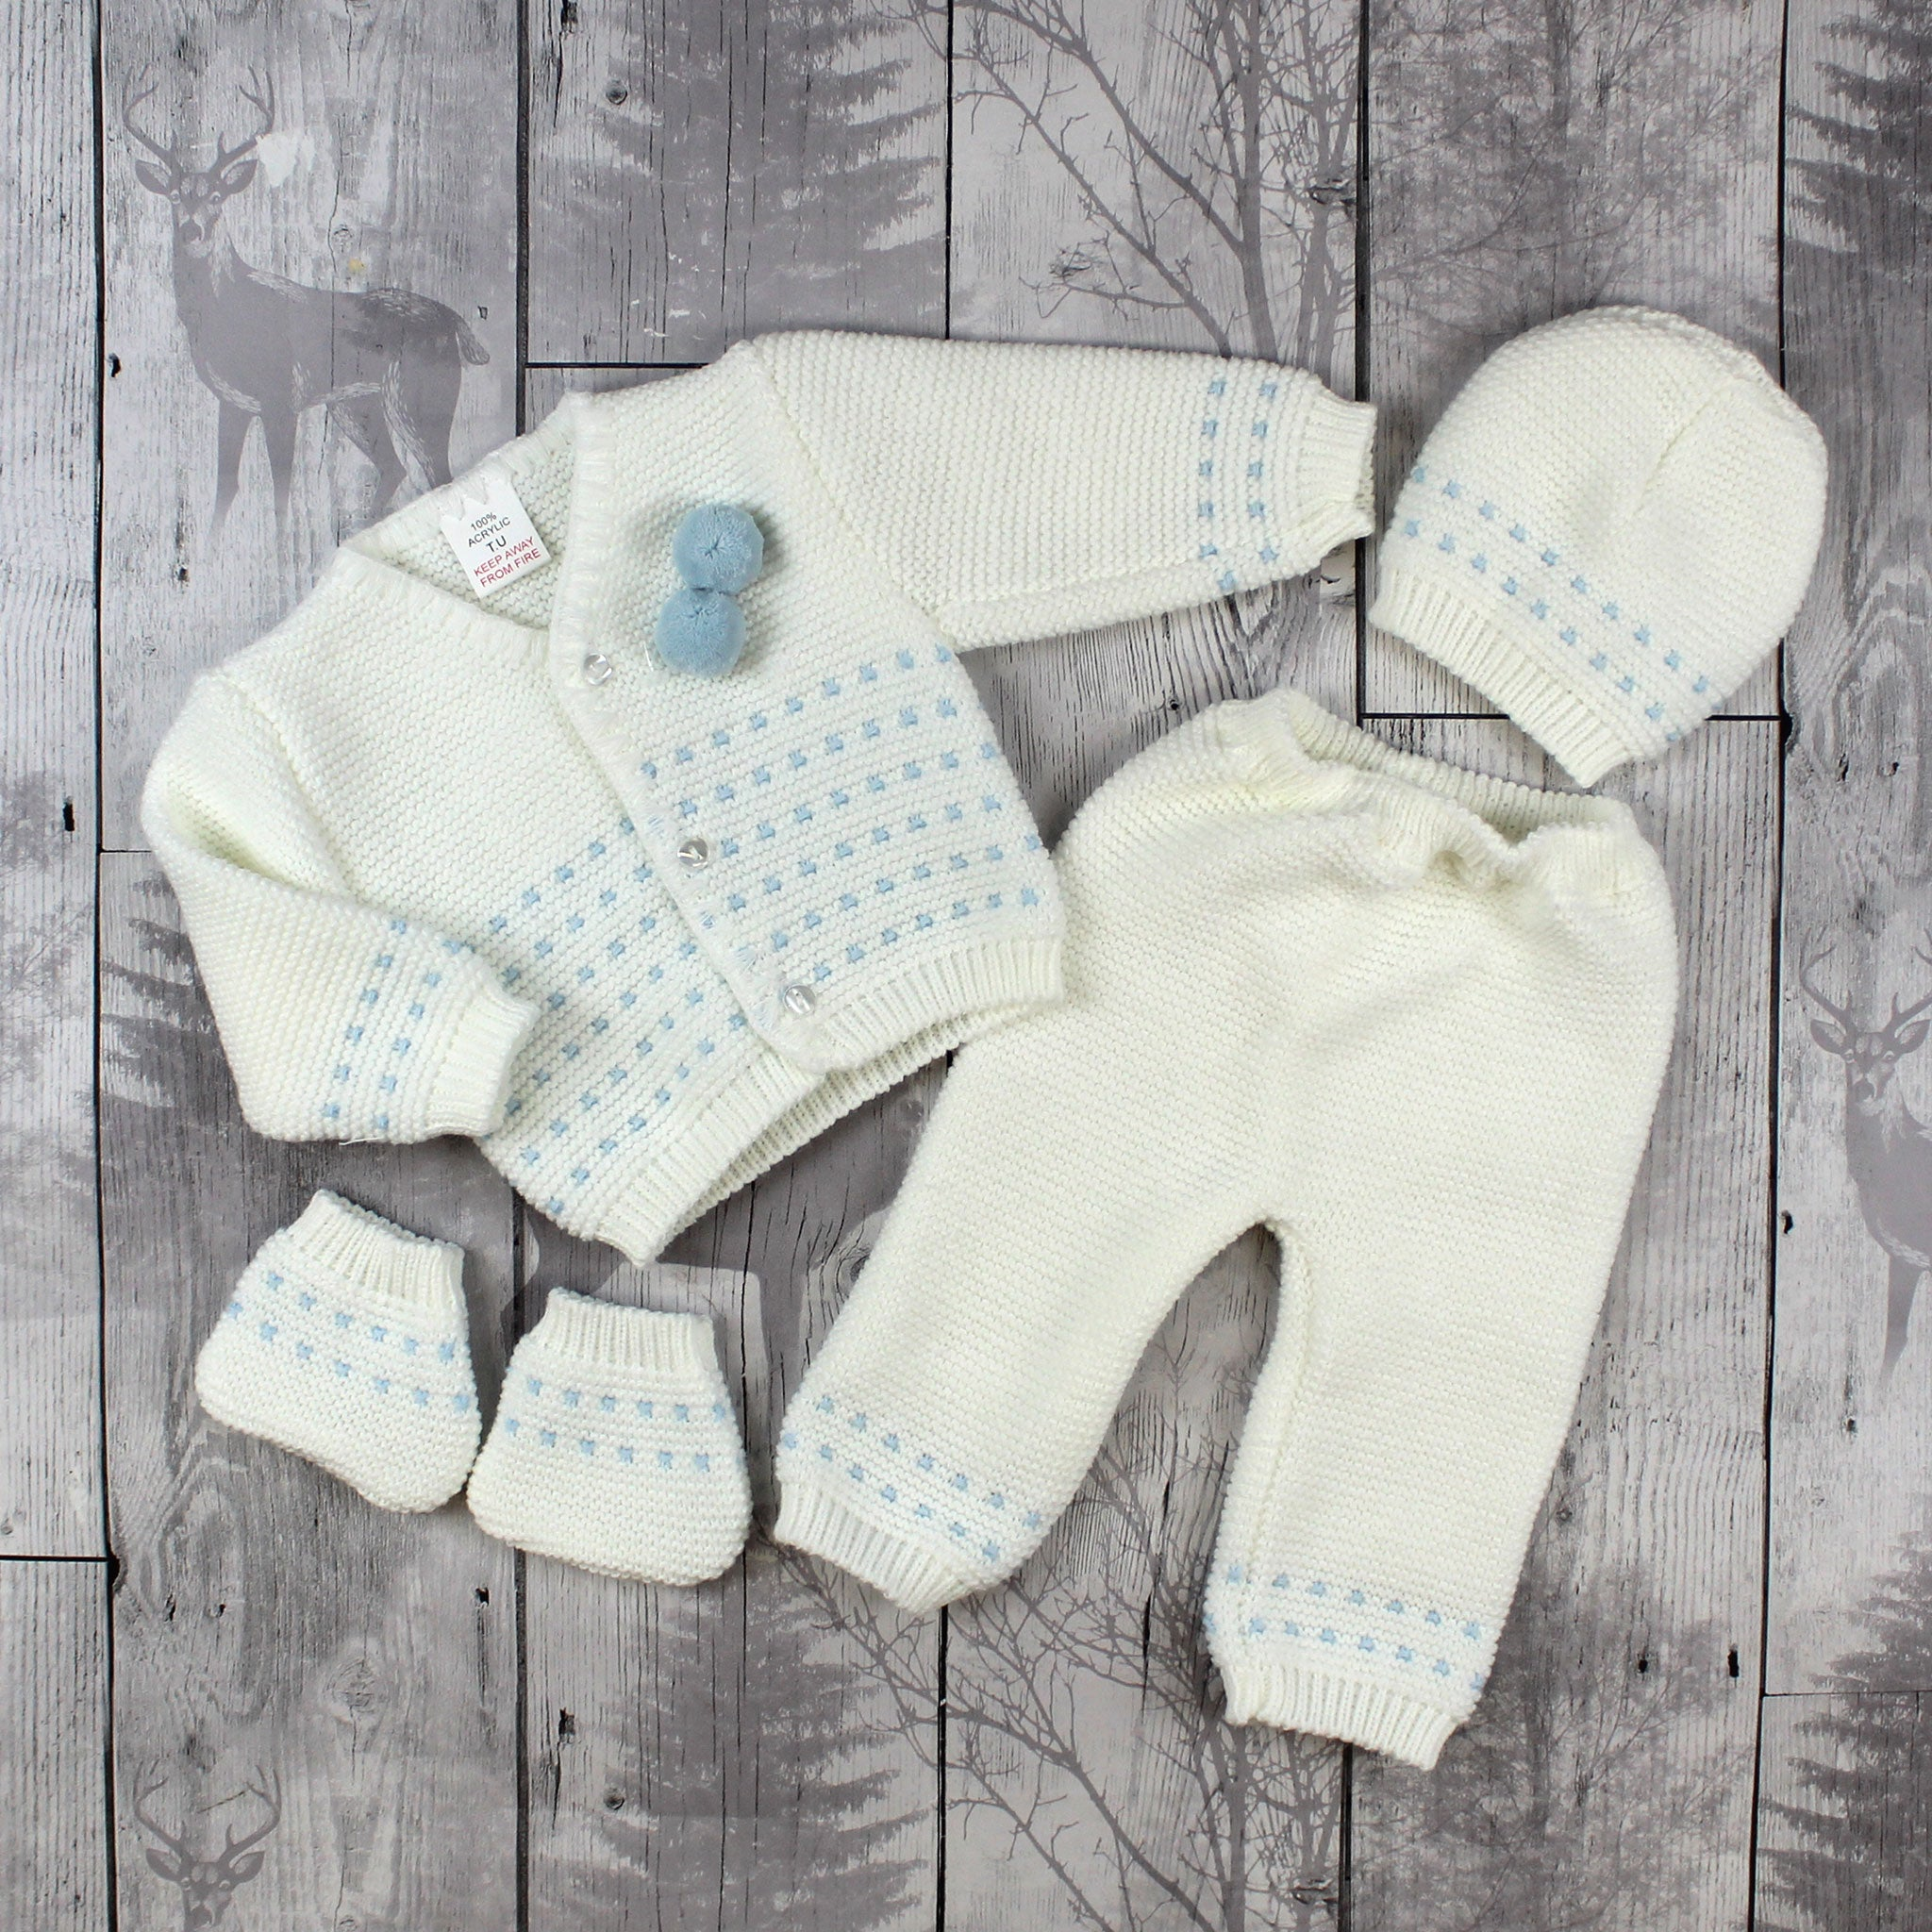 Knitted Baby Boy Outfit White Blue Top, Trousers, Booties and Hat